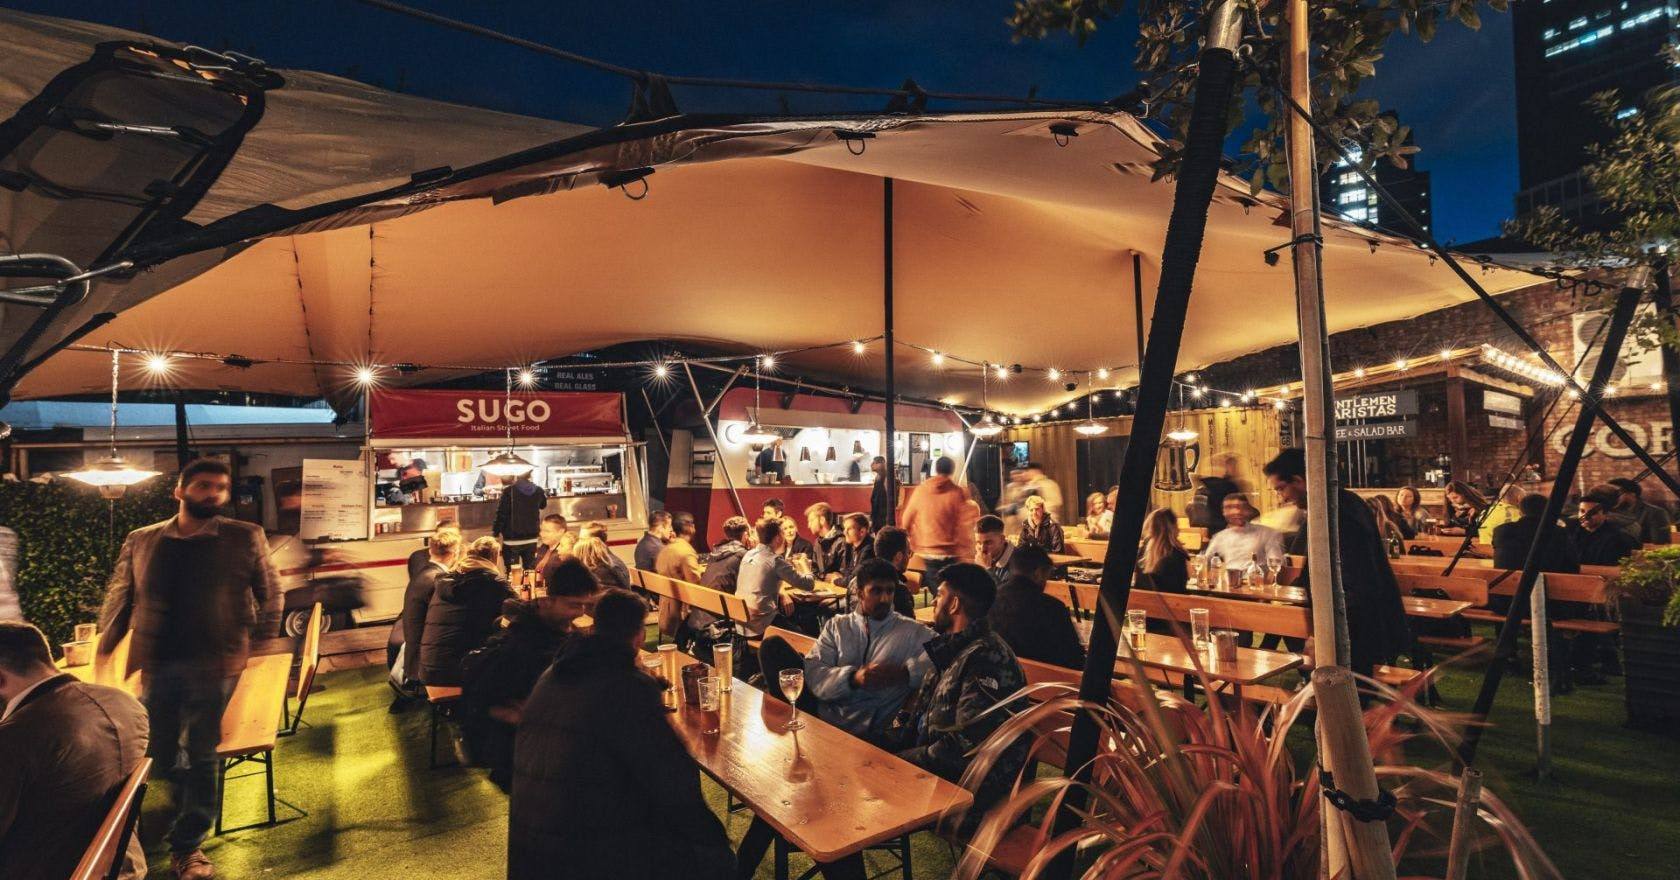 London's best restaurants and bars with heated outdoor terraces for tier 2 socialising